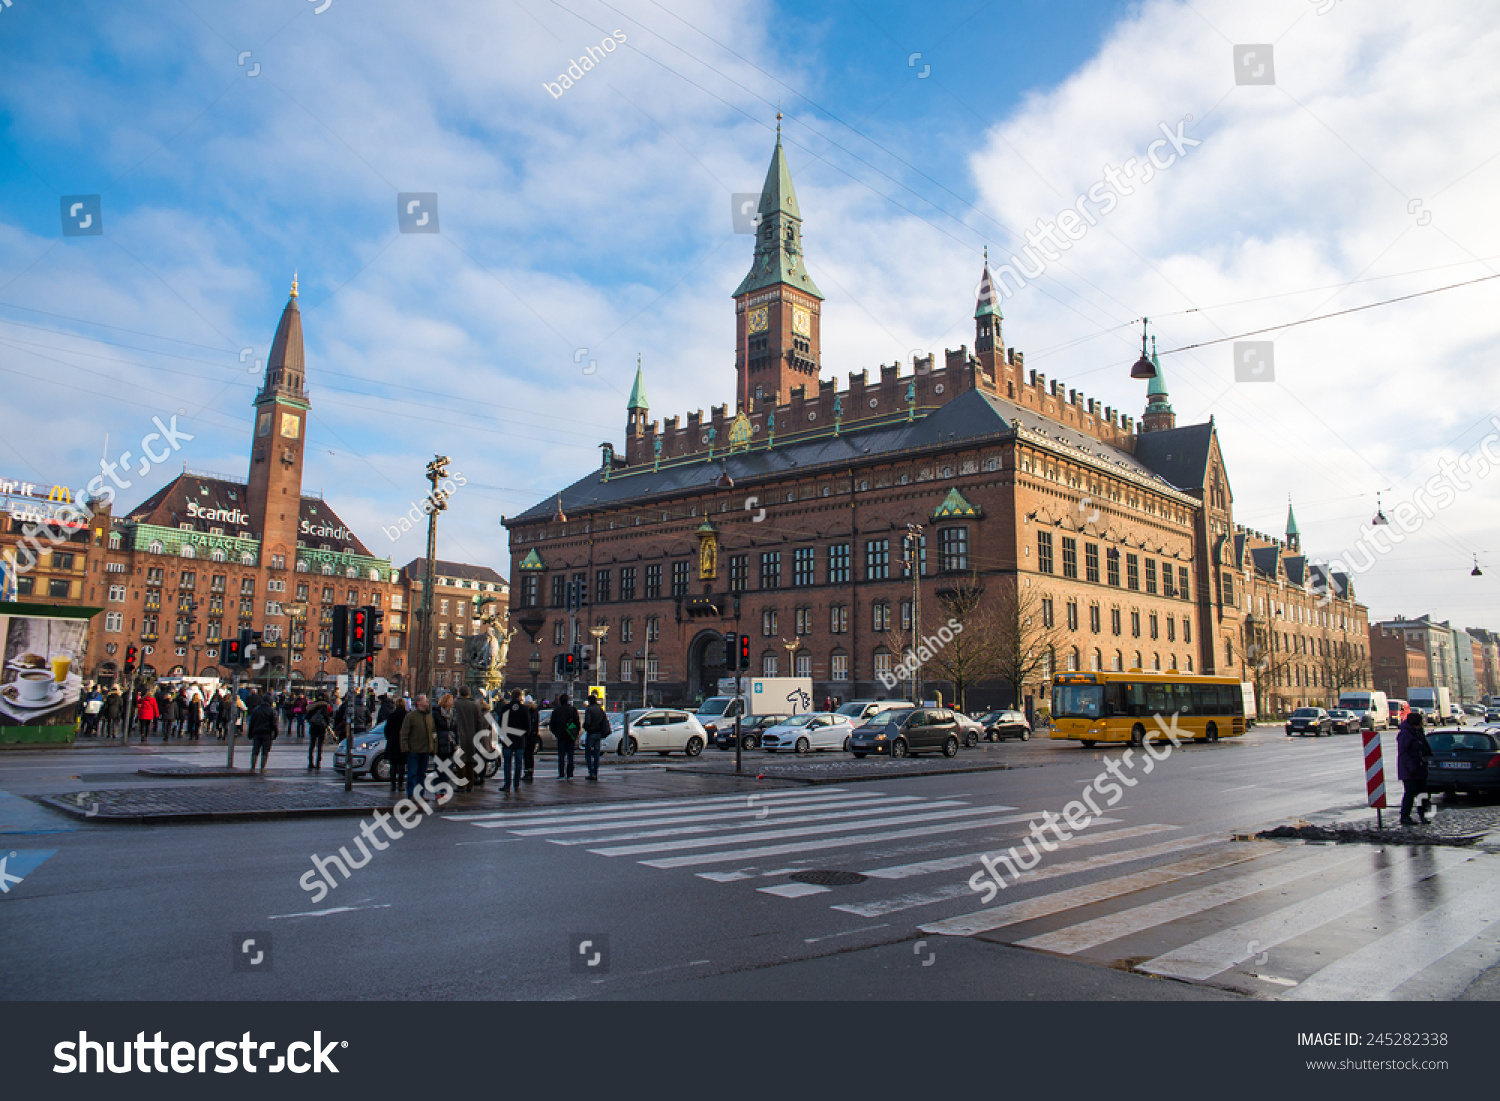 copenhagen denmark december 30 2014 city stock photo 245282338 shutterstock. Black Bedroom Furniture Sets. Home Design Ideas